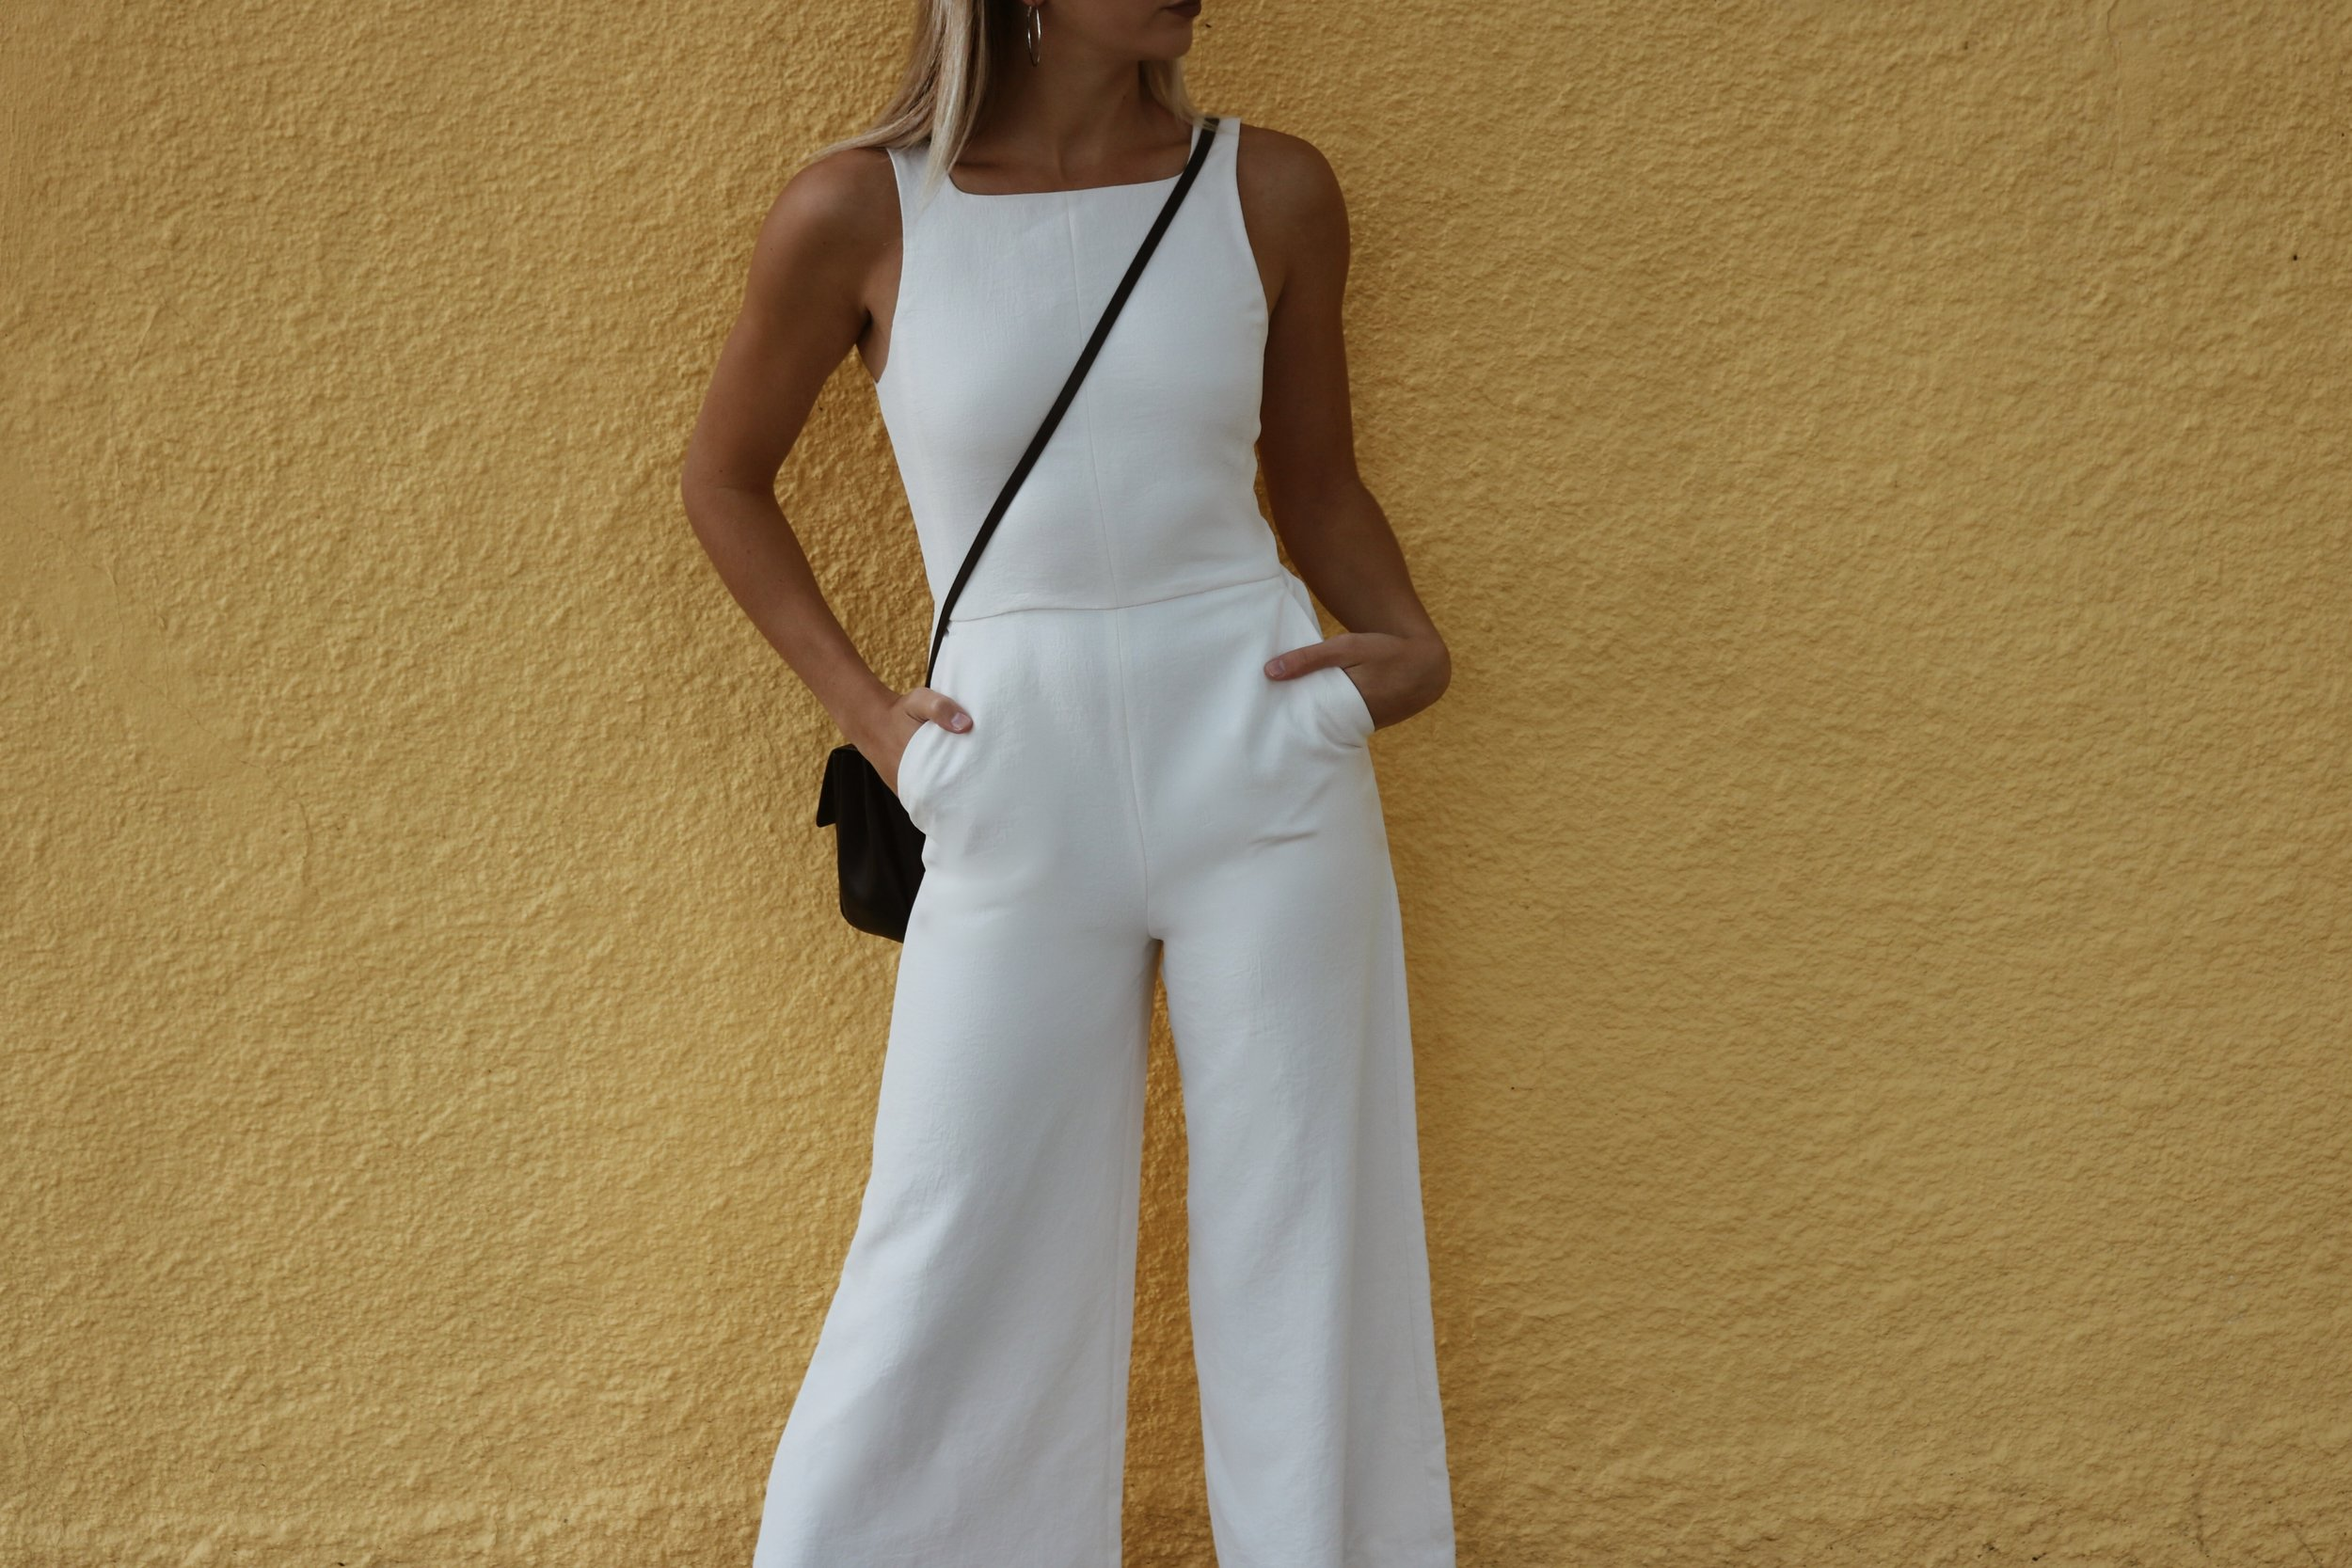 brittany lauren brittanylaurens saskatoon blogger ootd jumpsuit aritzia celine sunglasses auxillary outfit fashion blog style yellow wall paint ecoulement